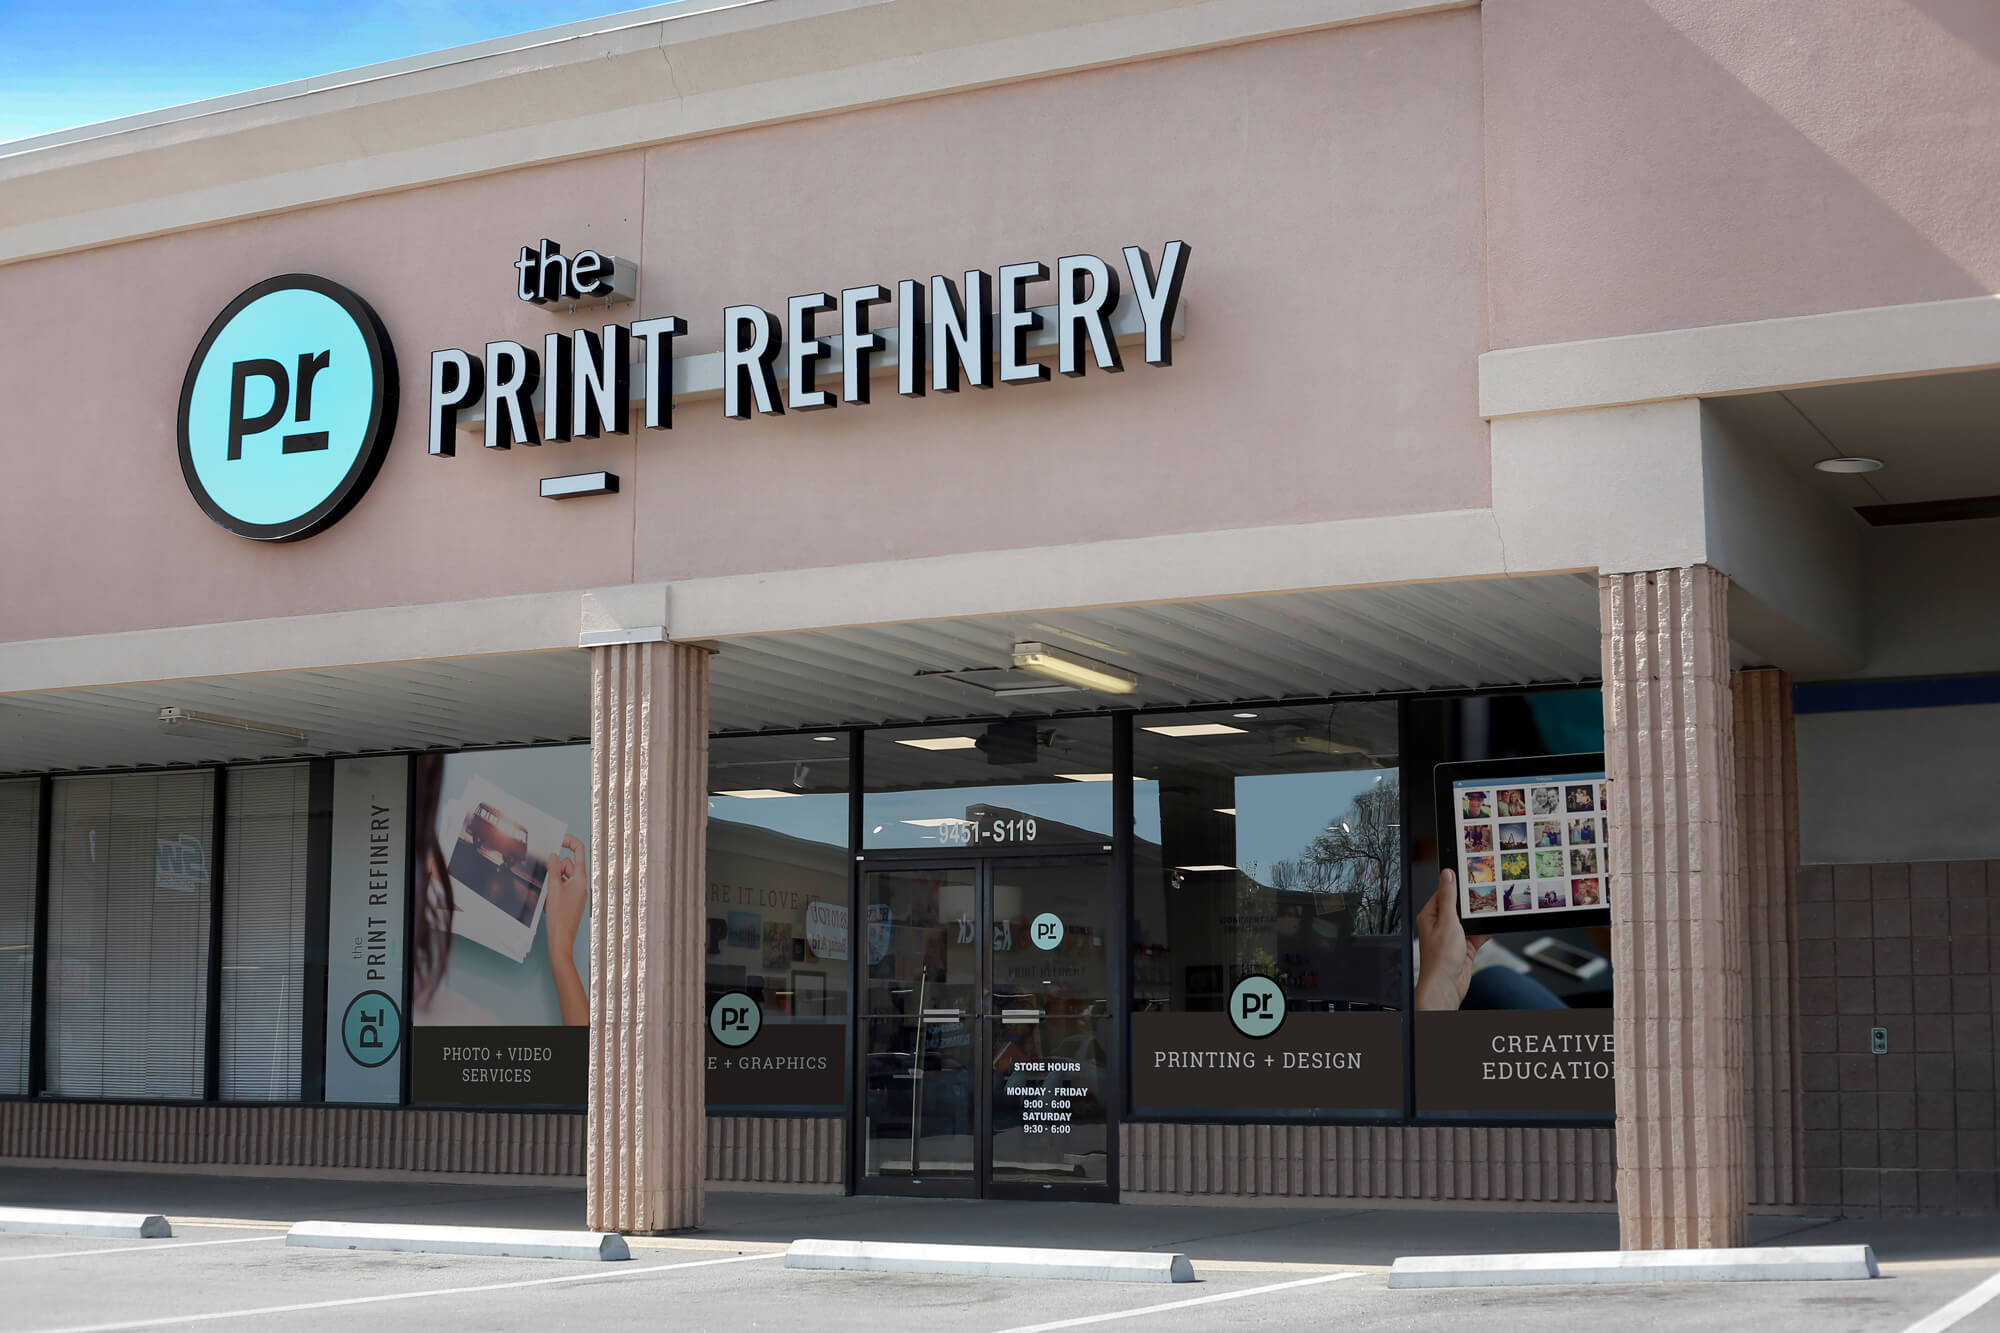 the print refinery, licensing opportunity